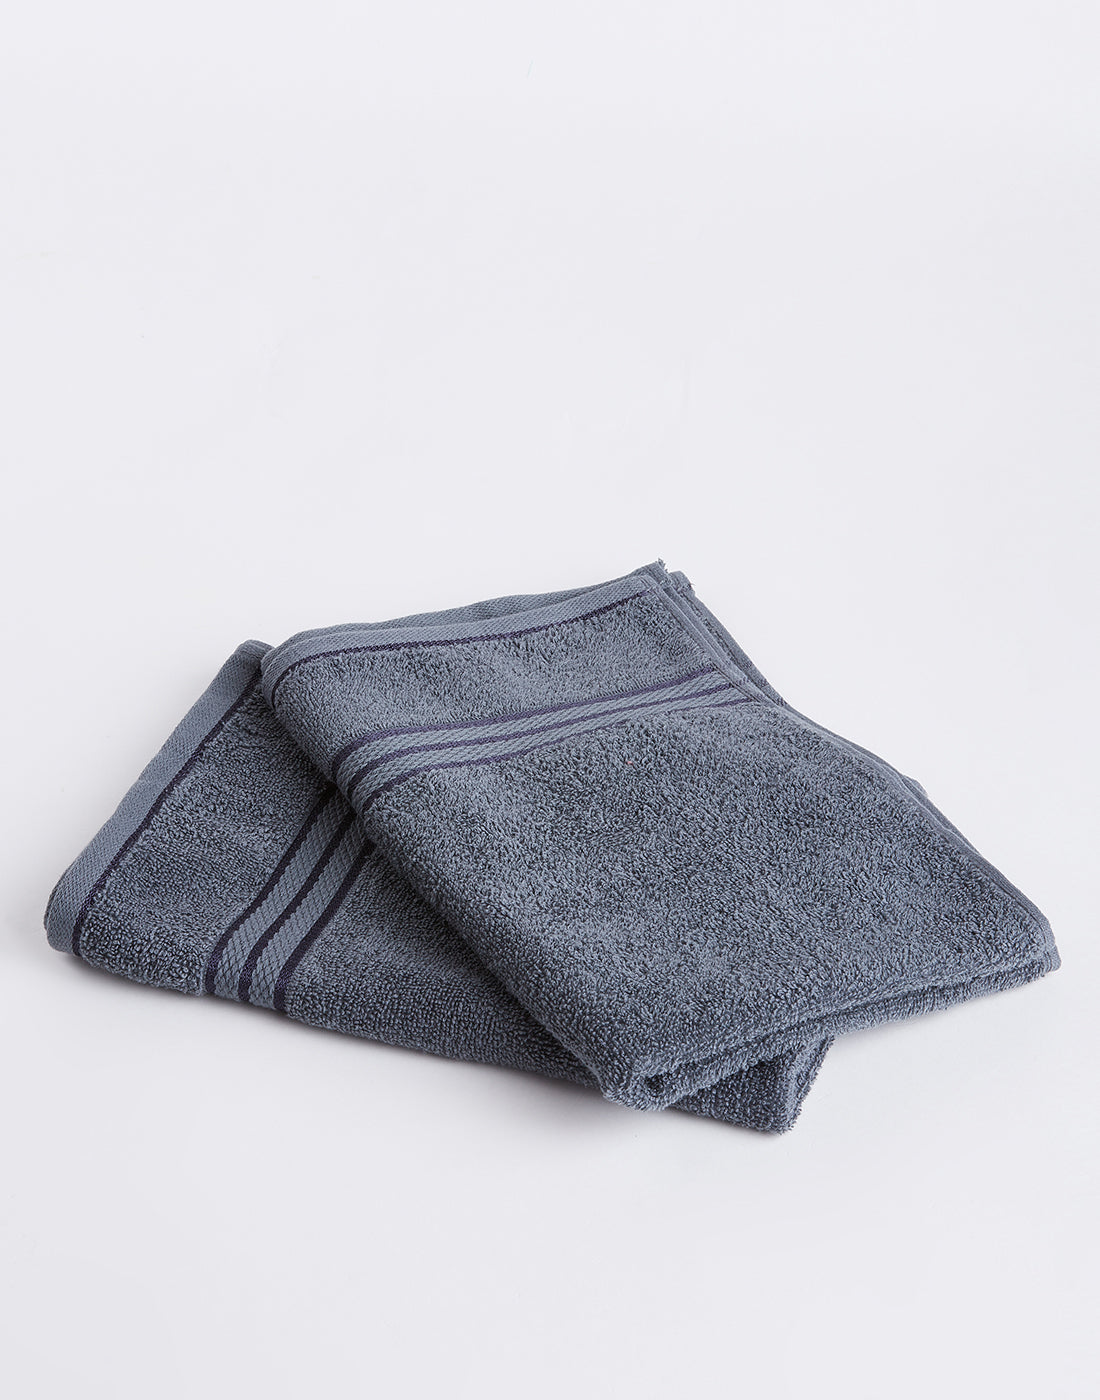 Octave Charcoal Grey Set of 2 Cotton Hand Towels